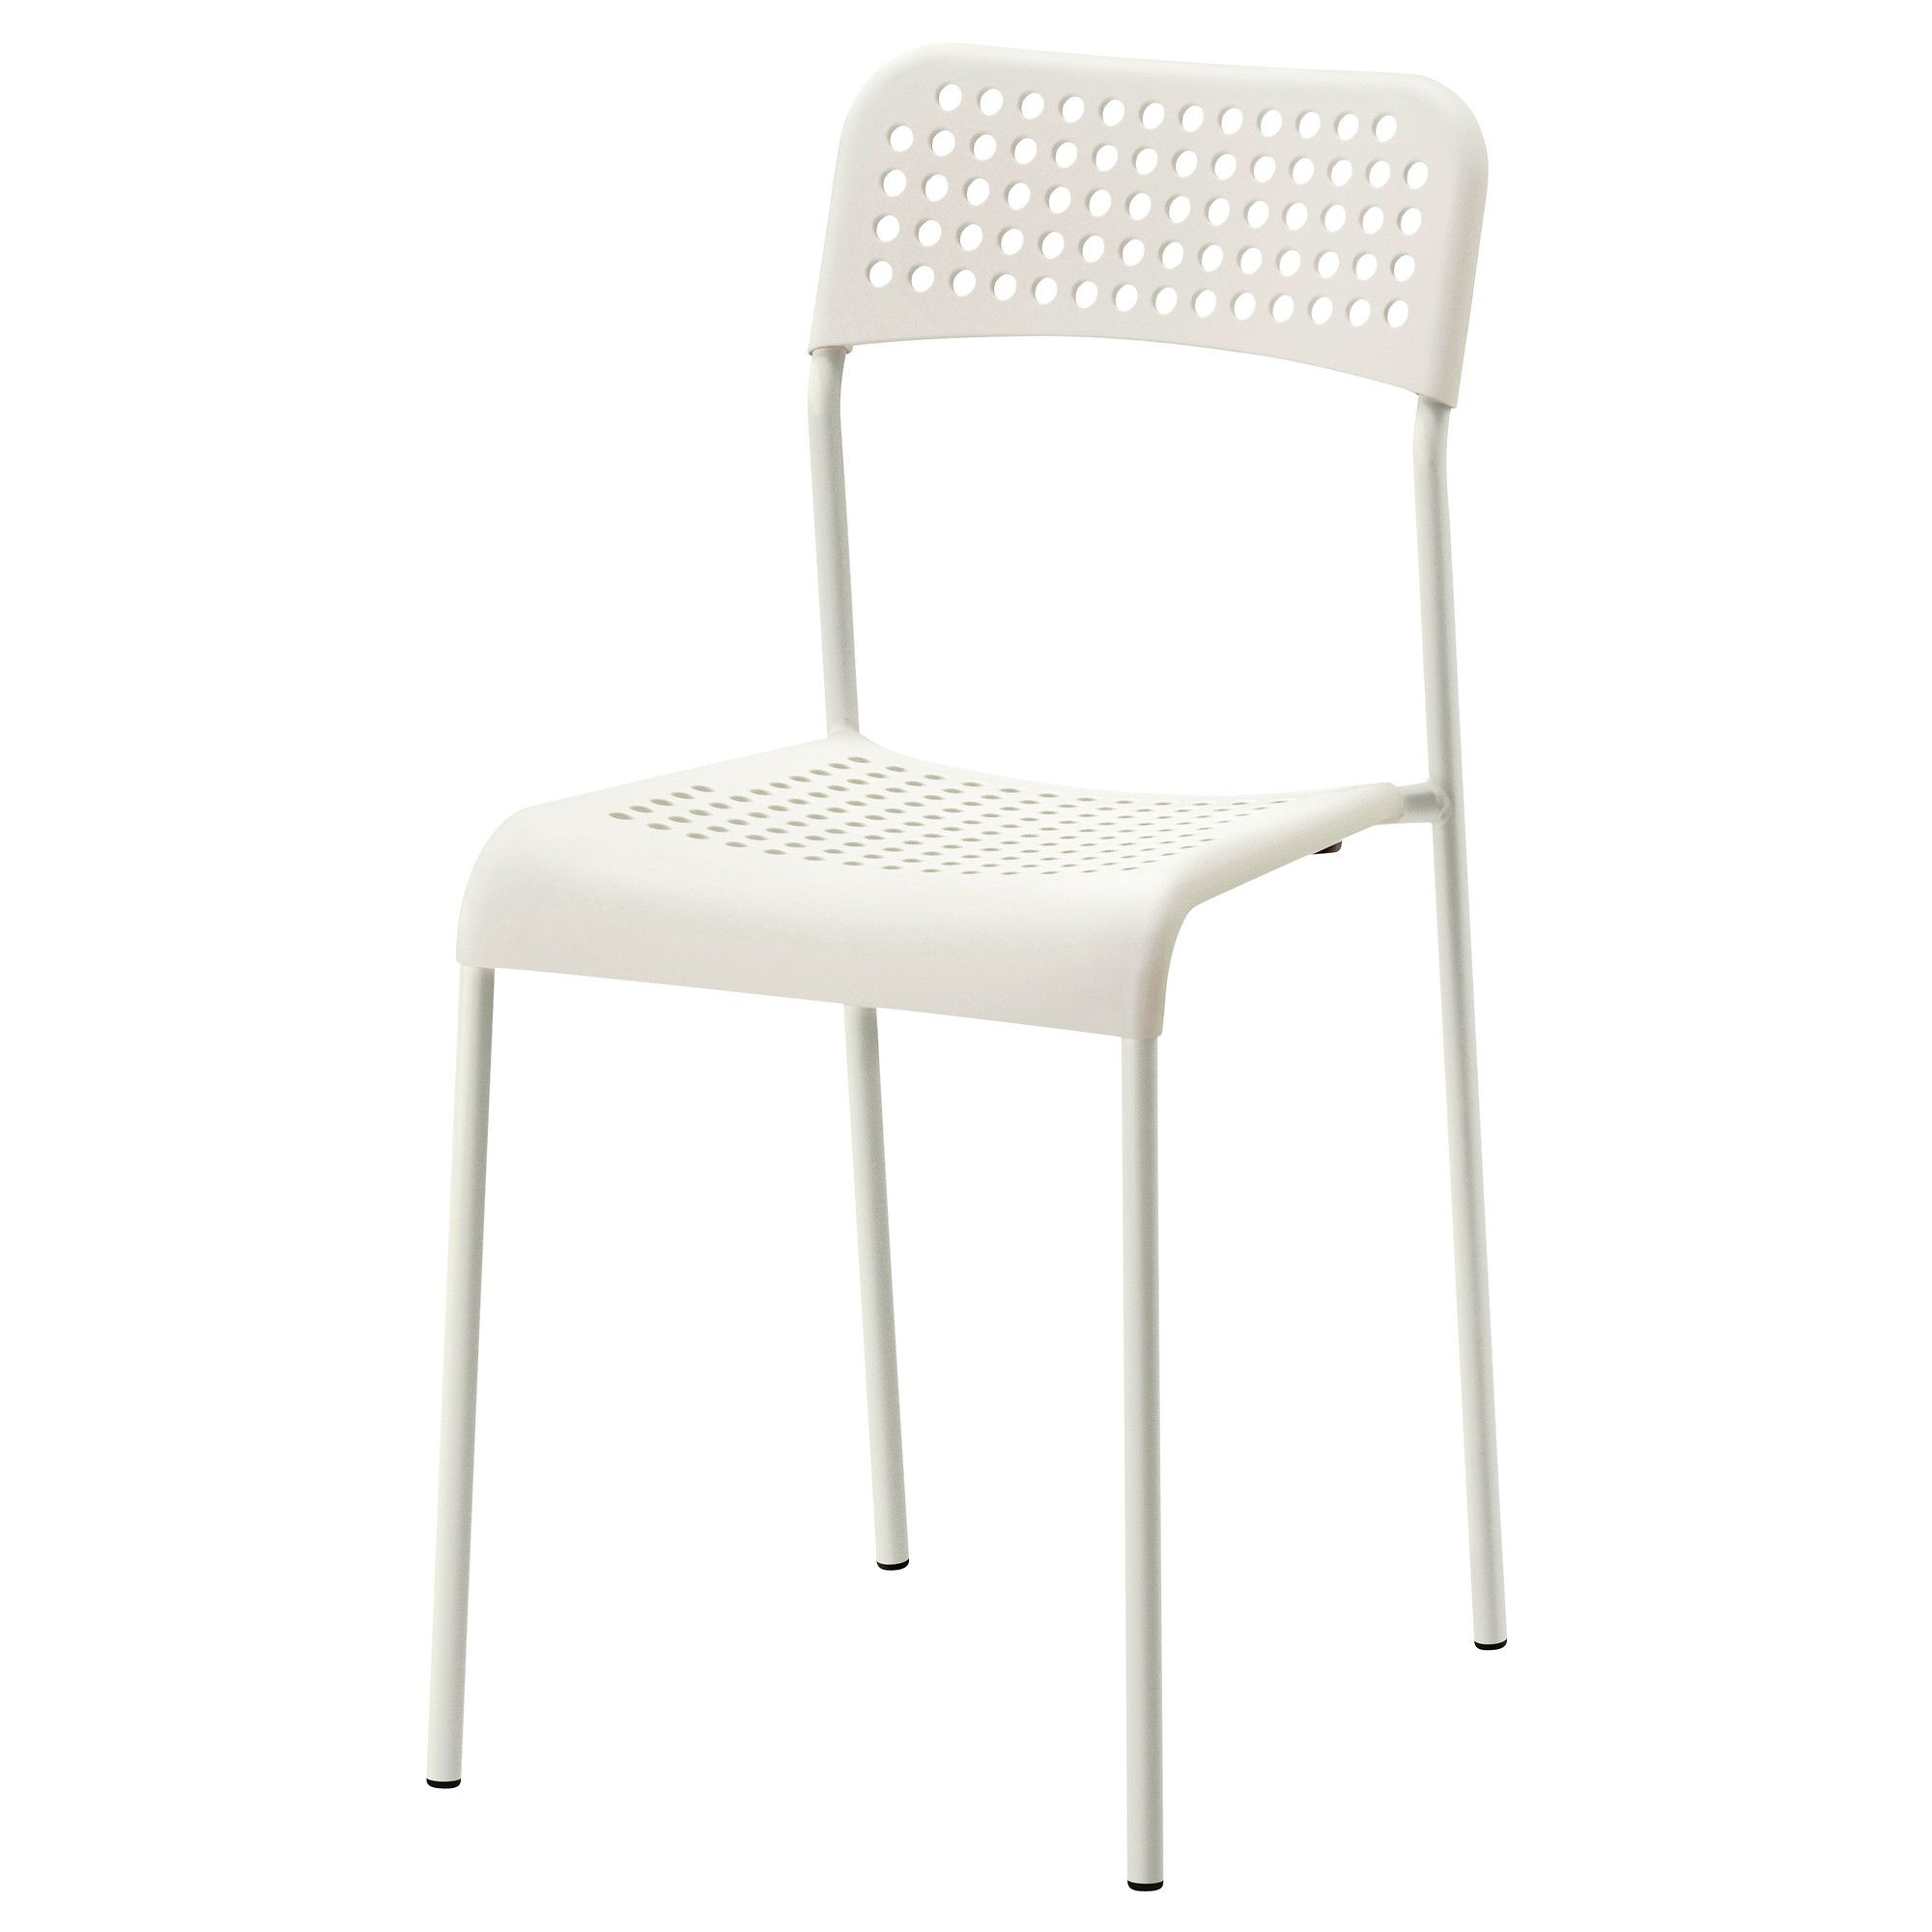 ADDE Chair White